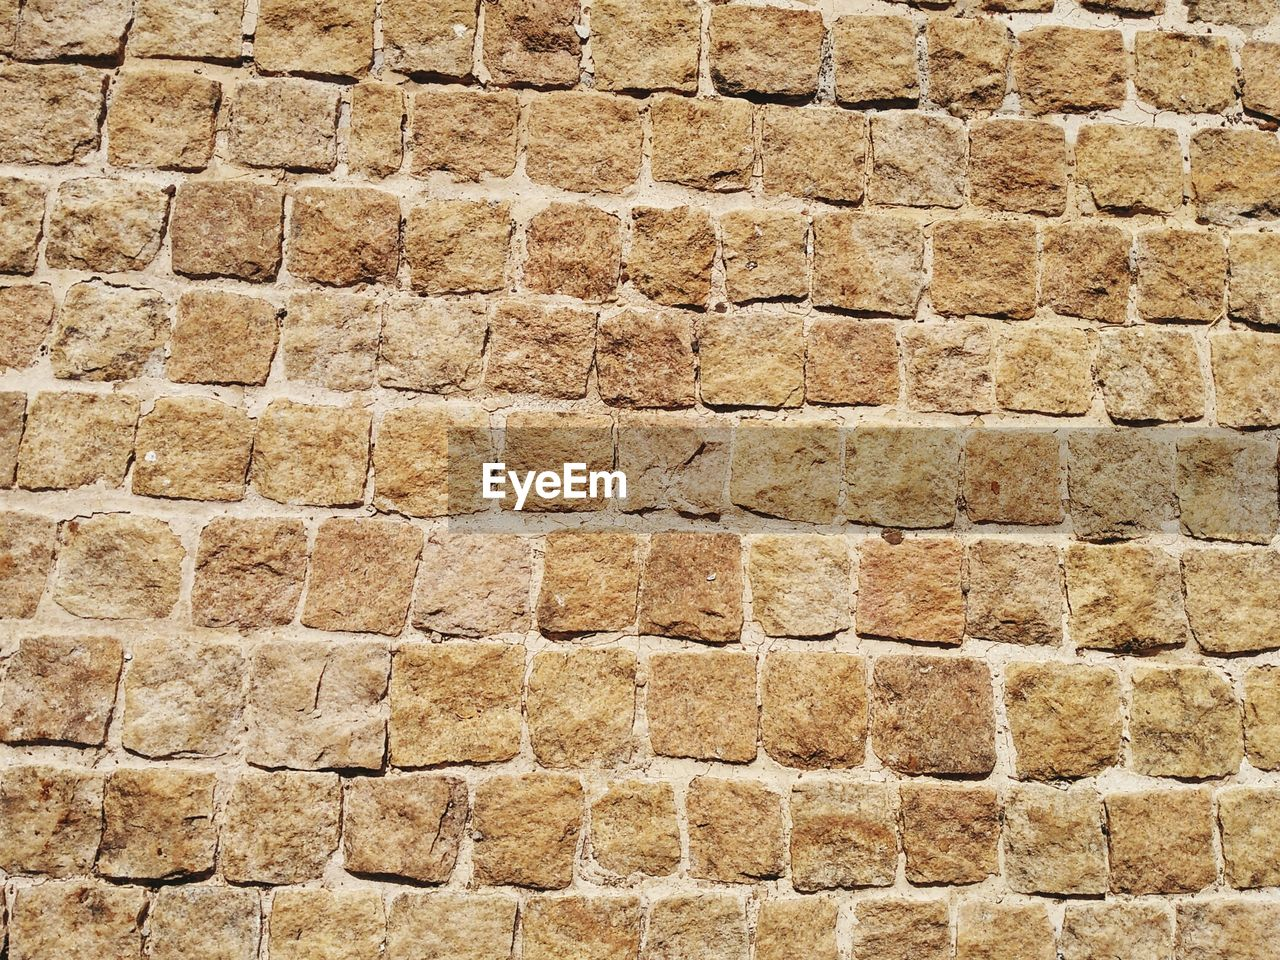 backgrounds, full frame, built structure, architecture, wall, textured, wall - building feature, pattern, brick, no people, brick wall, day, solid, rough, old, outdoors, stone material, brown, nature, close-up, stone wall, textured effect, concrete, ruined